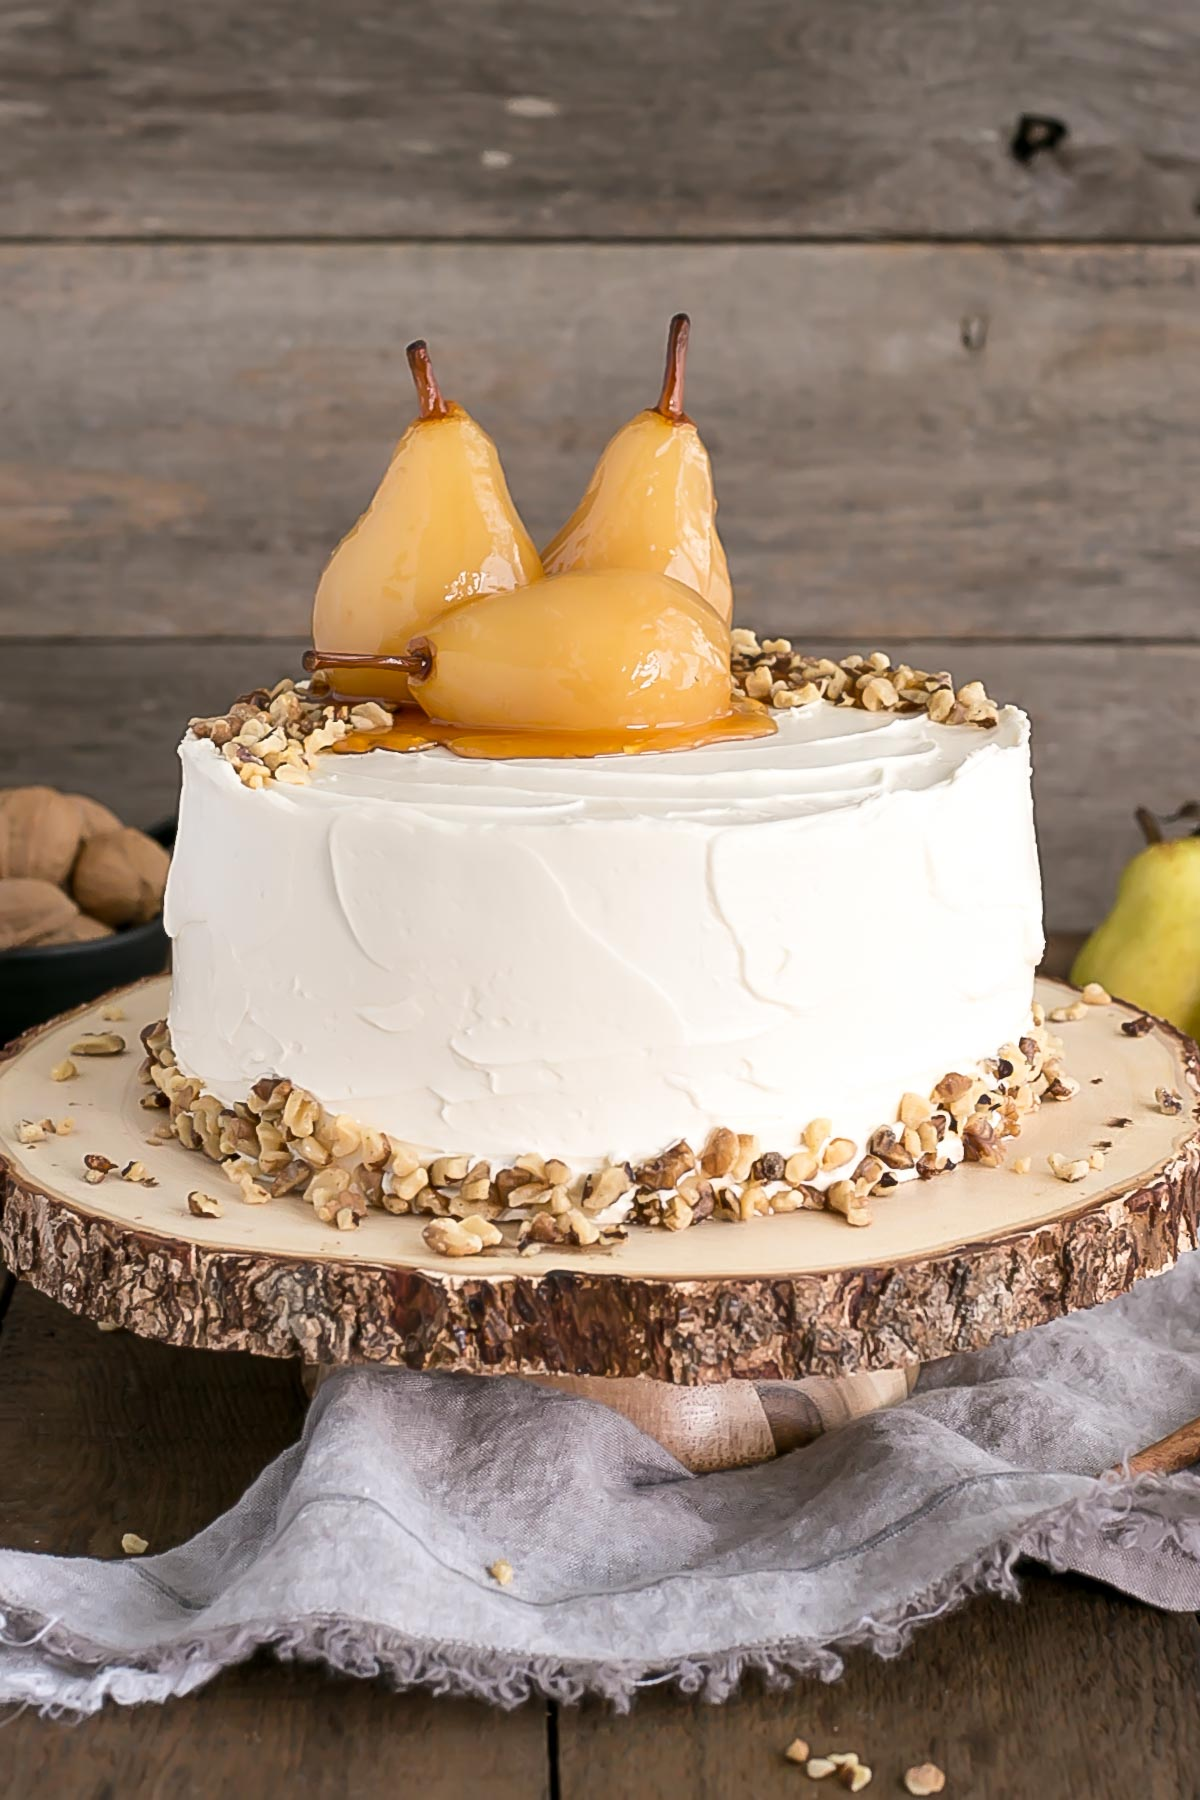 Walnut cake with poached pears on top on a rustic wooden cake stand.